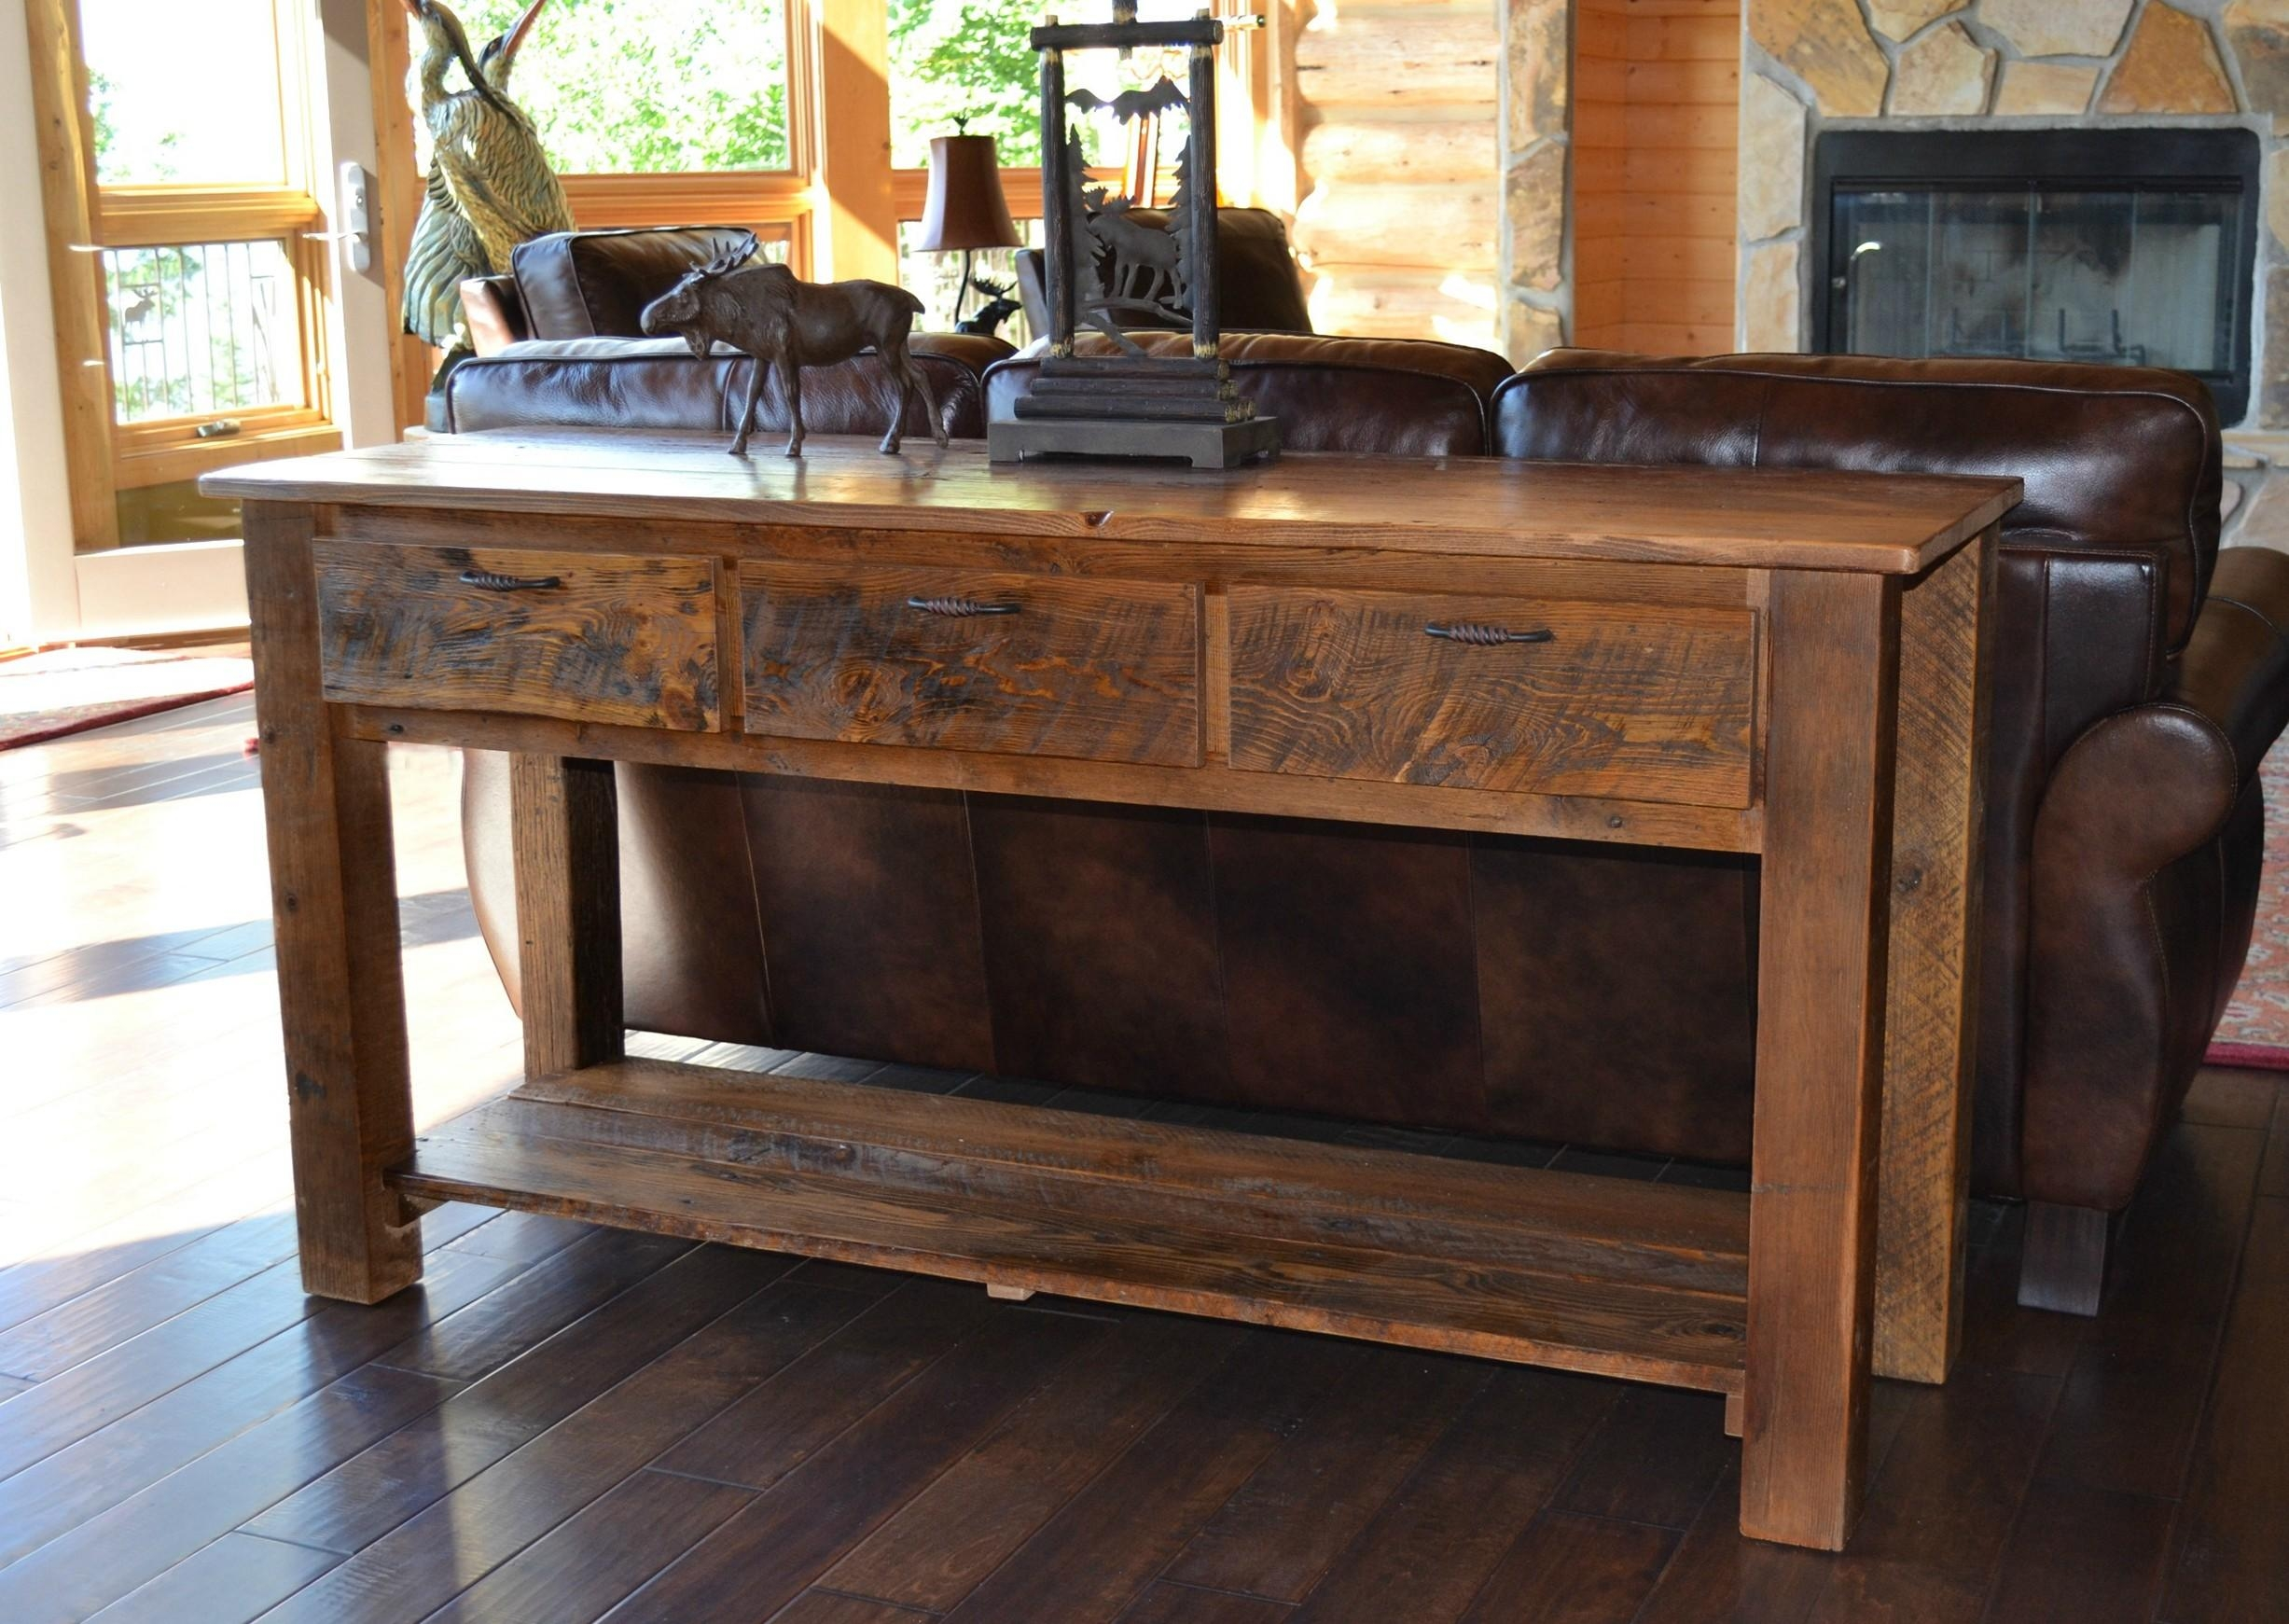 Sofa Rustic Tables With Storage | Ciov In Sofa Tables With Storages (Image 12 of 20)